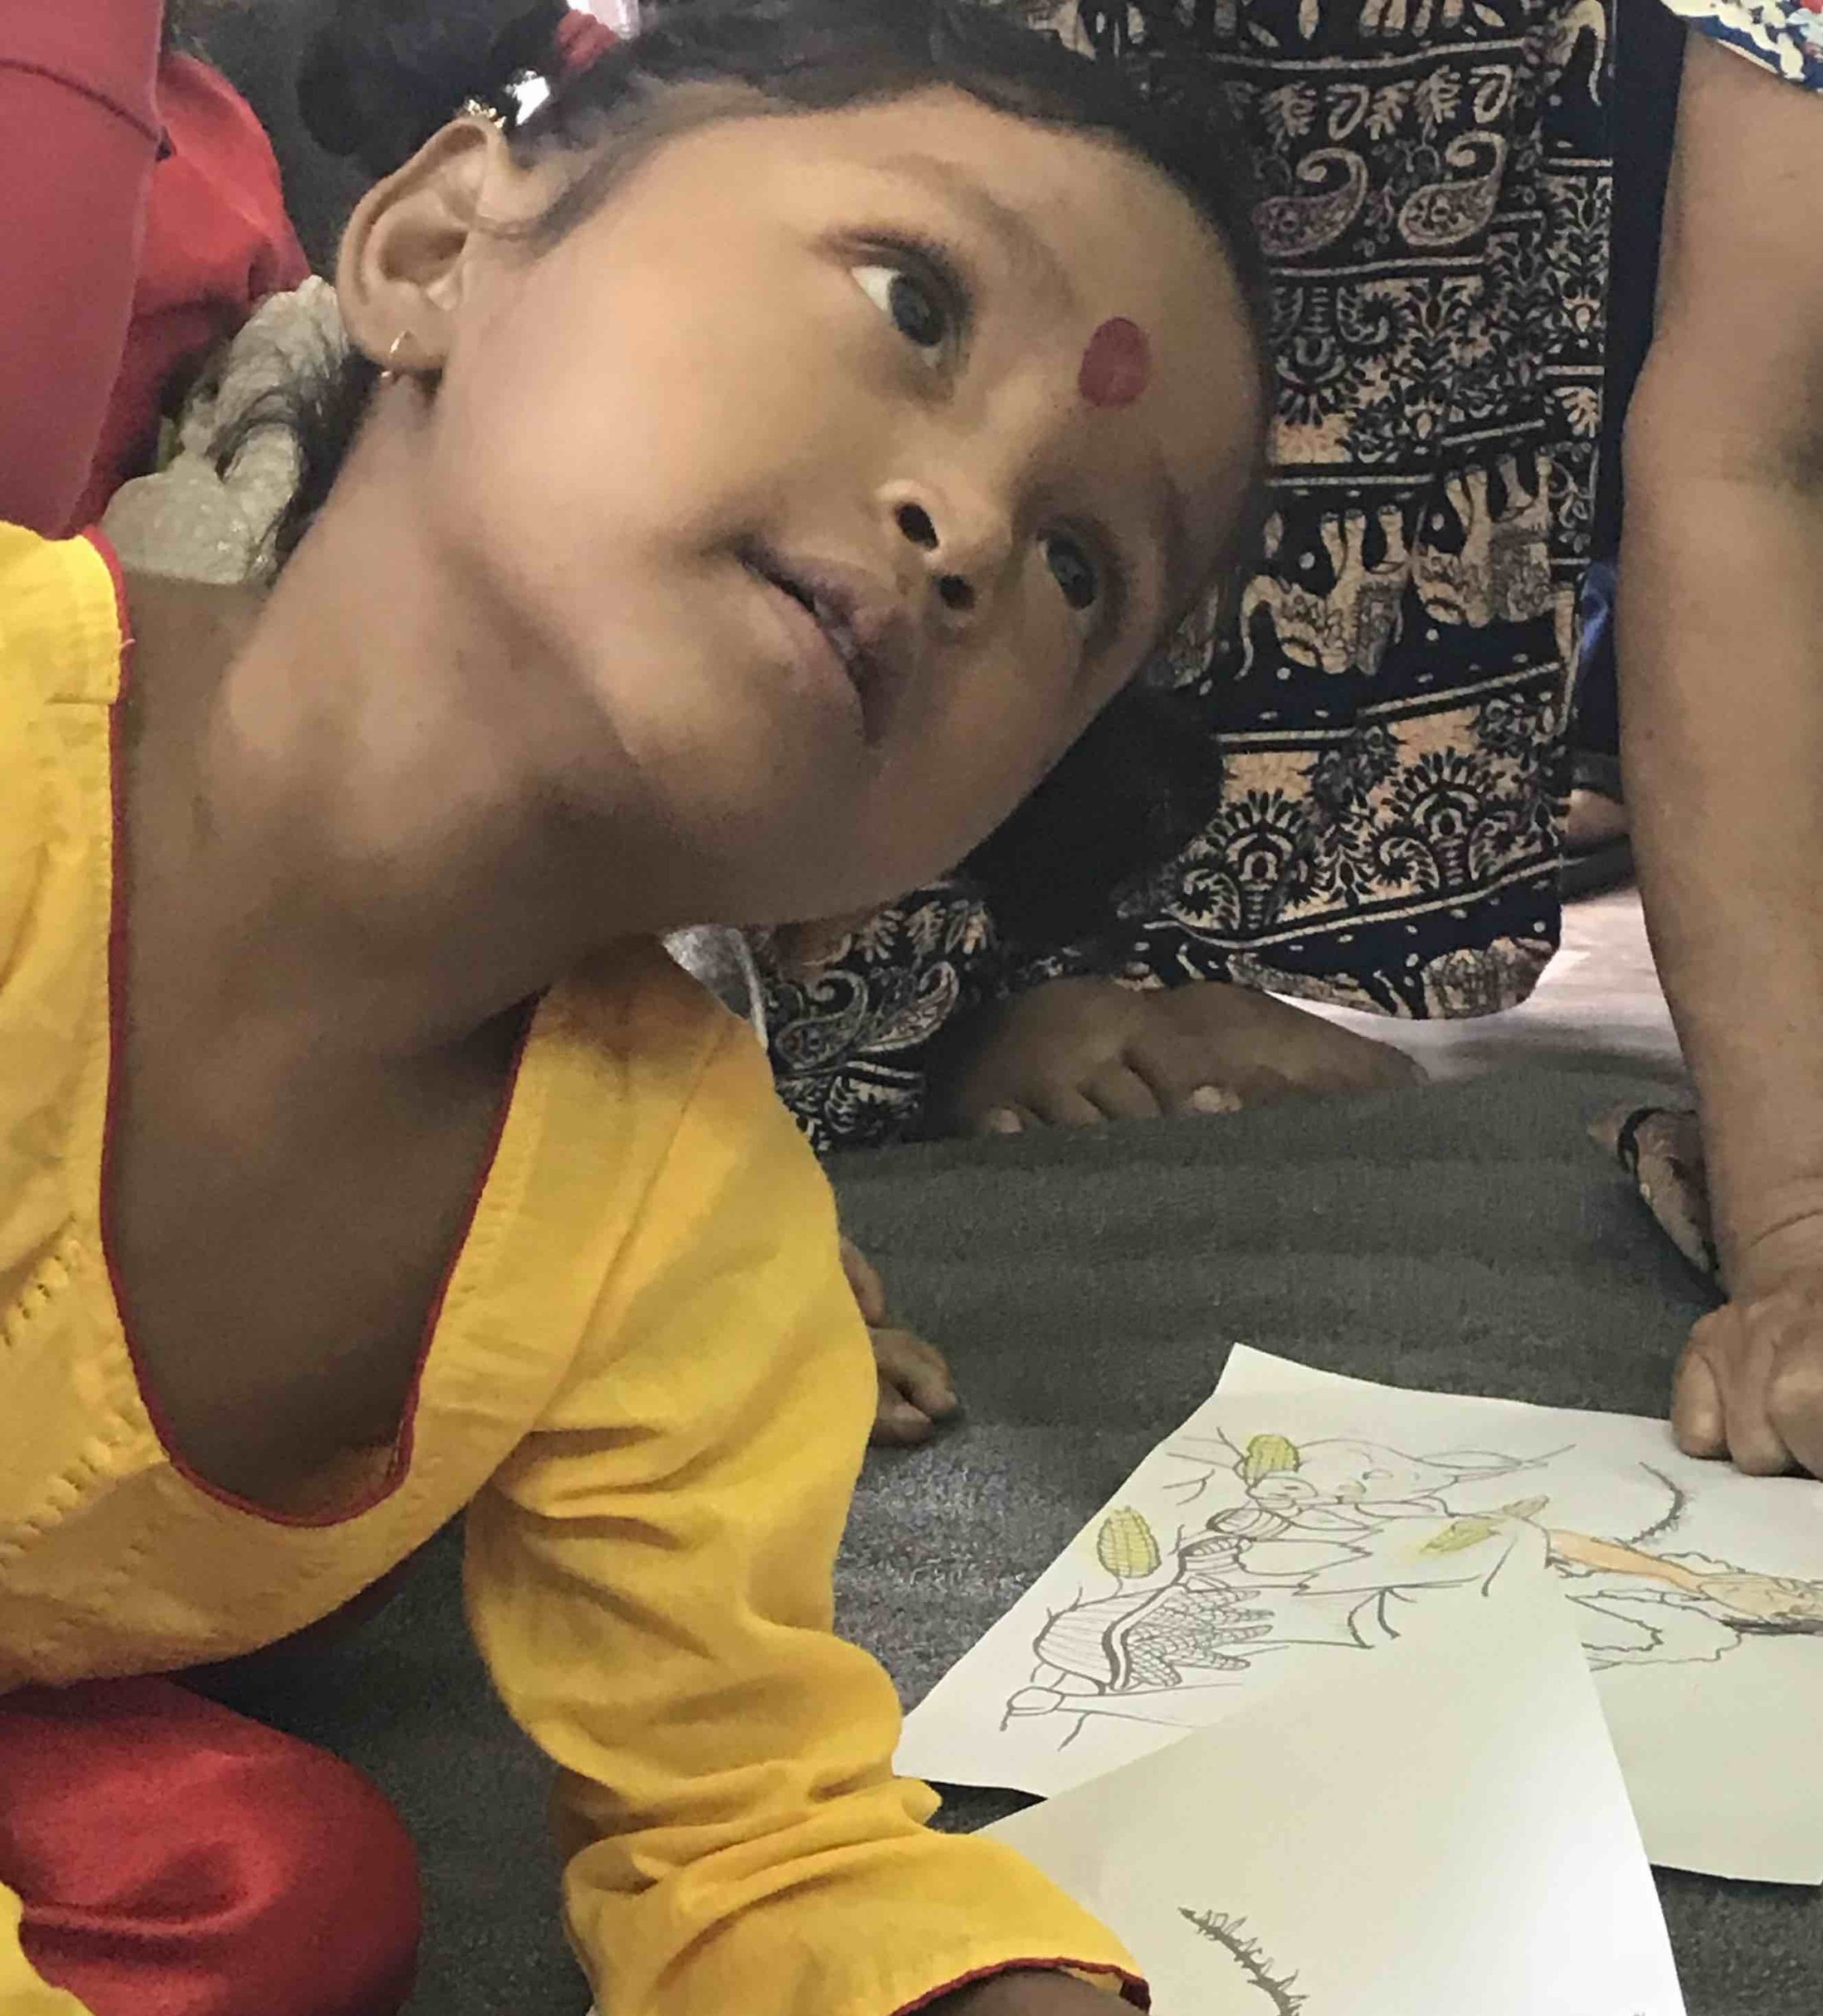 In Pokhara, the team visited children at the newly established Joyland Kindergarten. The team has formed an Action Team to help the founders of this school in their early efforts.